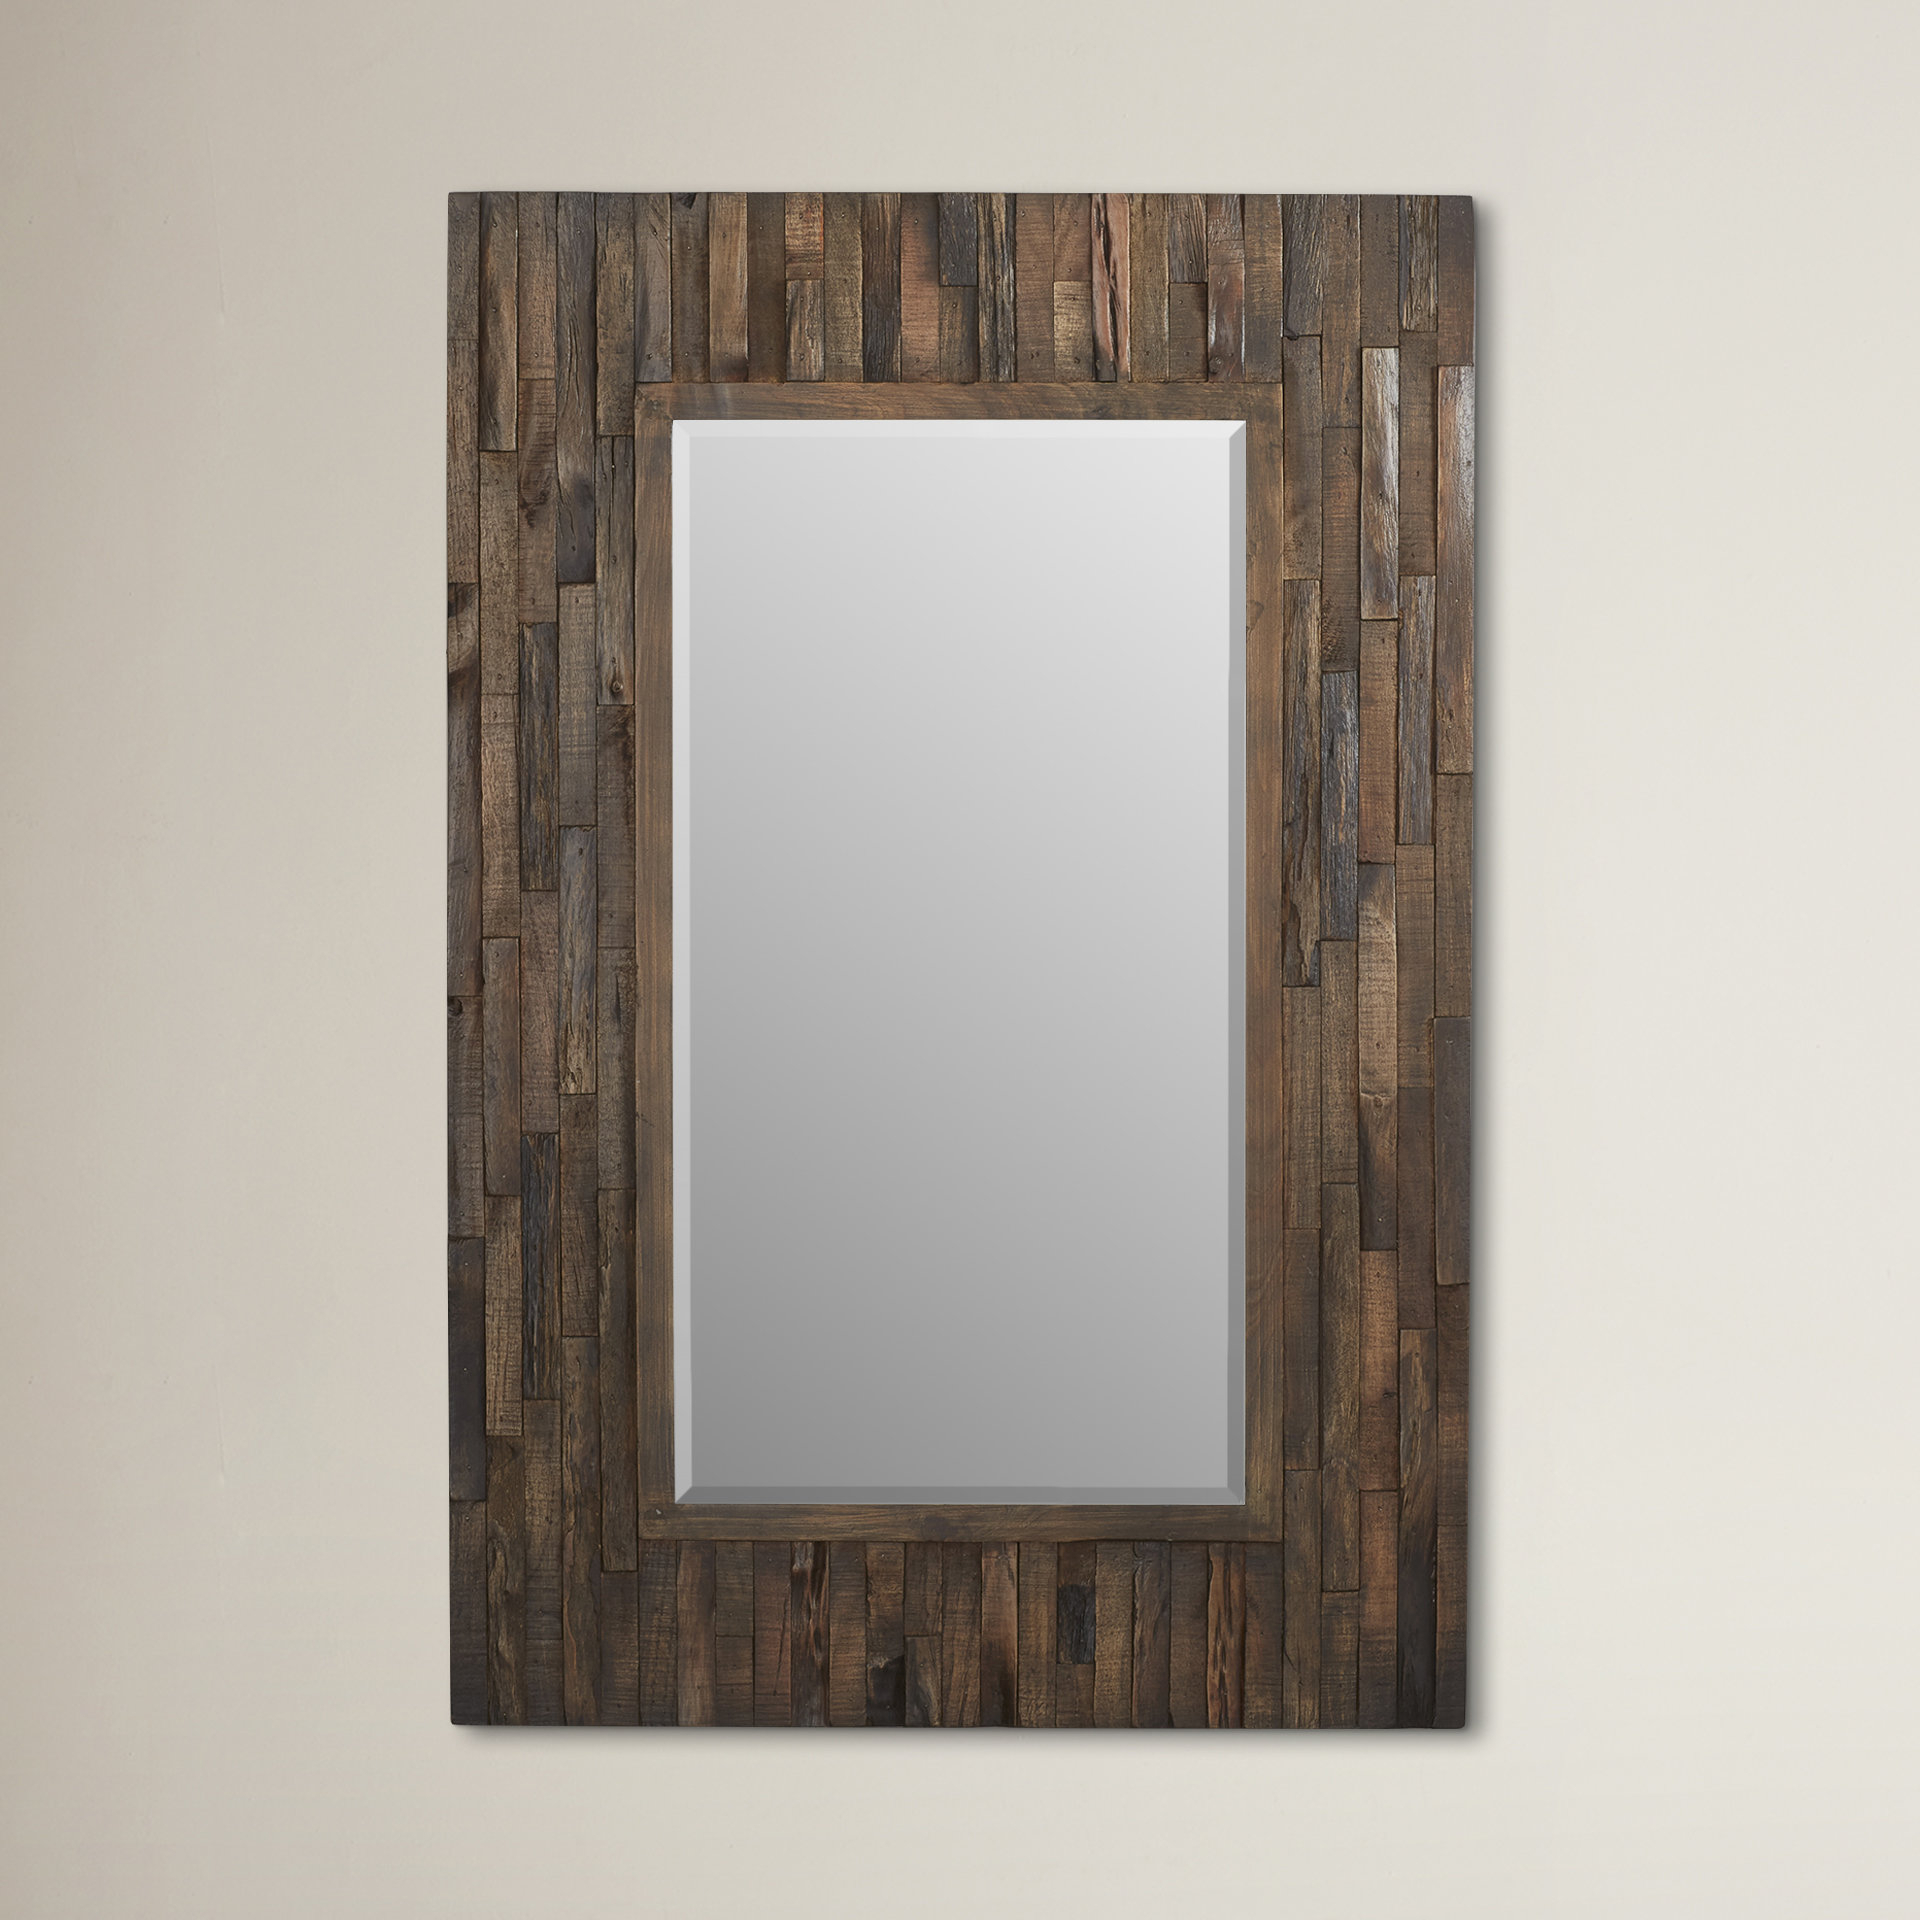 Farmhouse & Rustic Loon Peak Wall & Accent Mirrors | Birch Lane Pertaining To Lajoie Rustic Accent Mirrors (View 6 of 20)